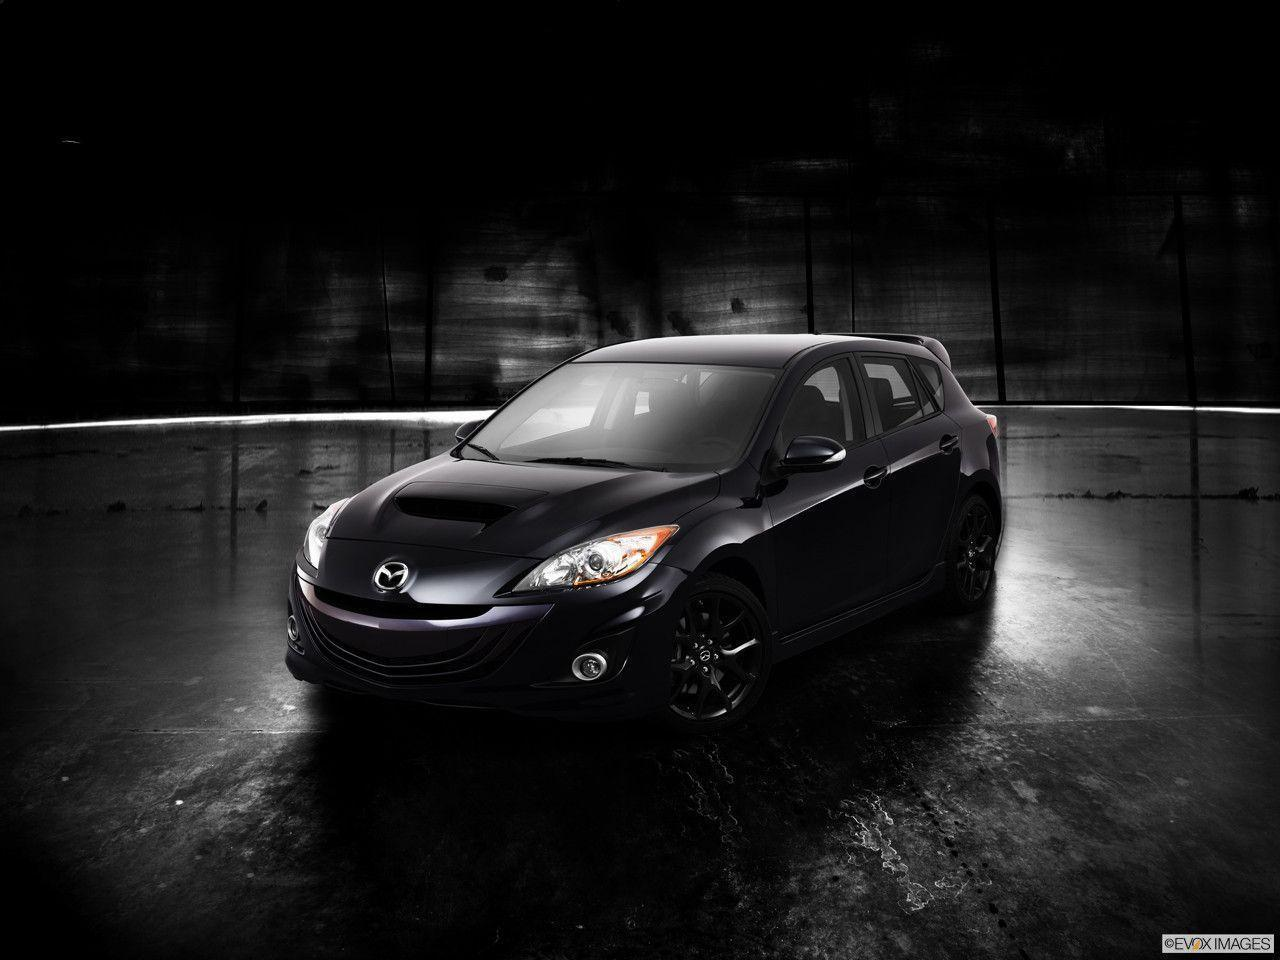 Mazdaspeed 3 Wallpapers